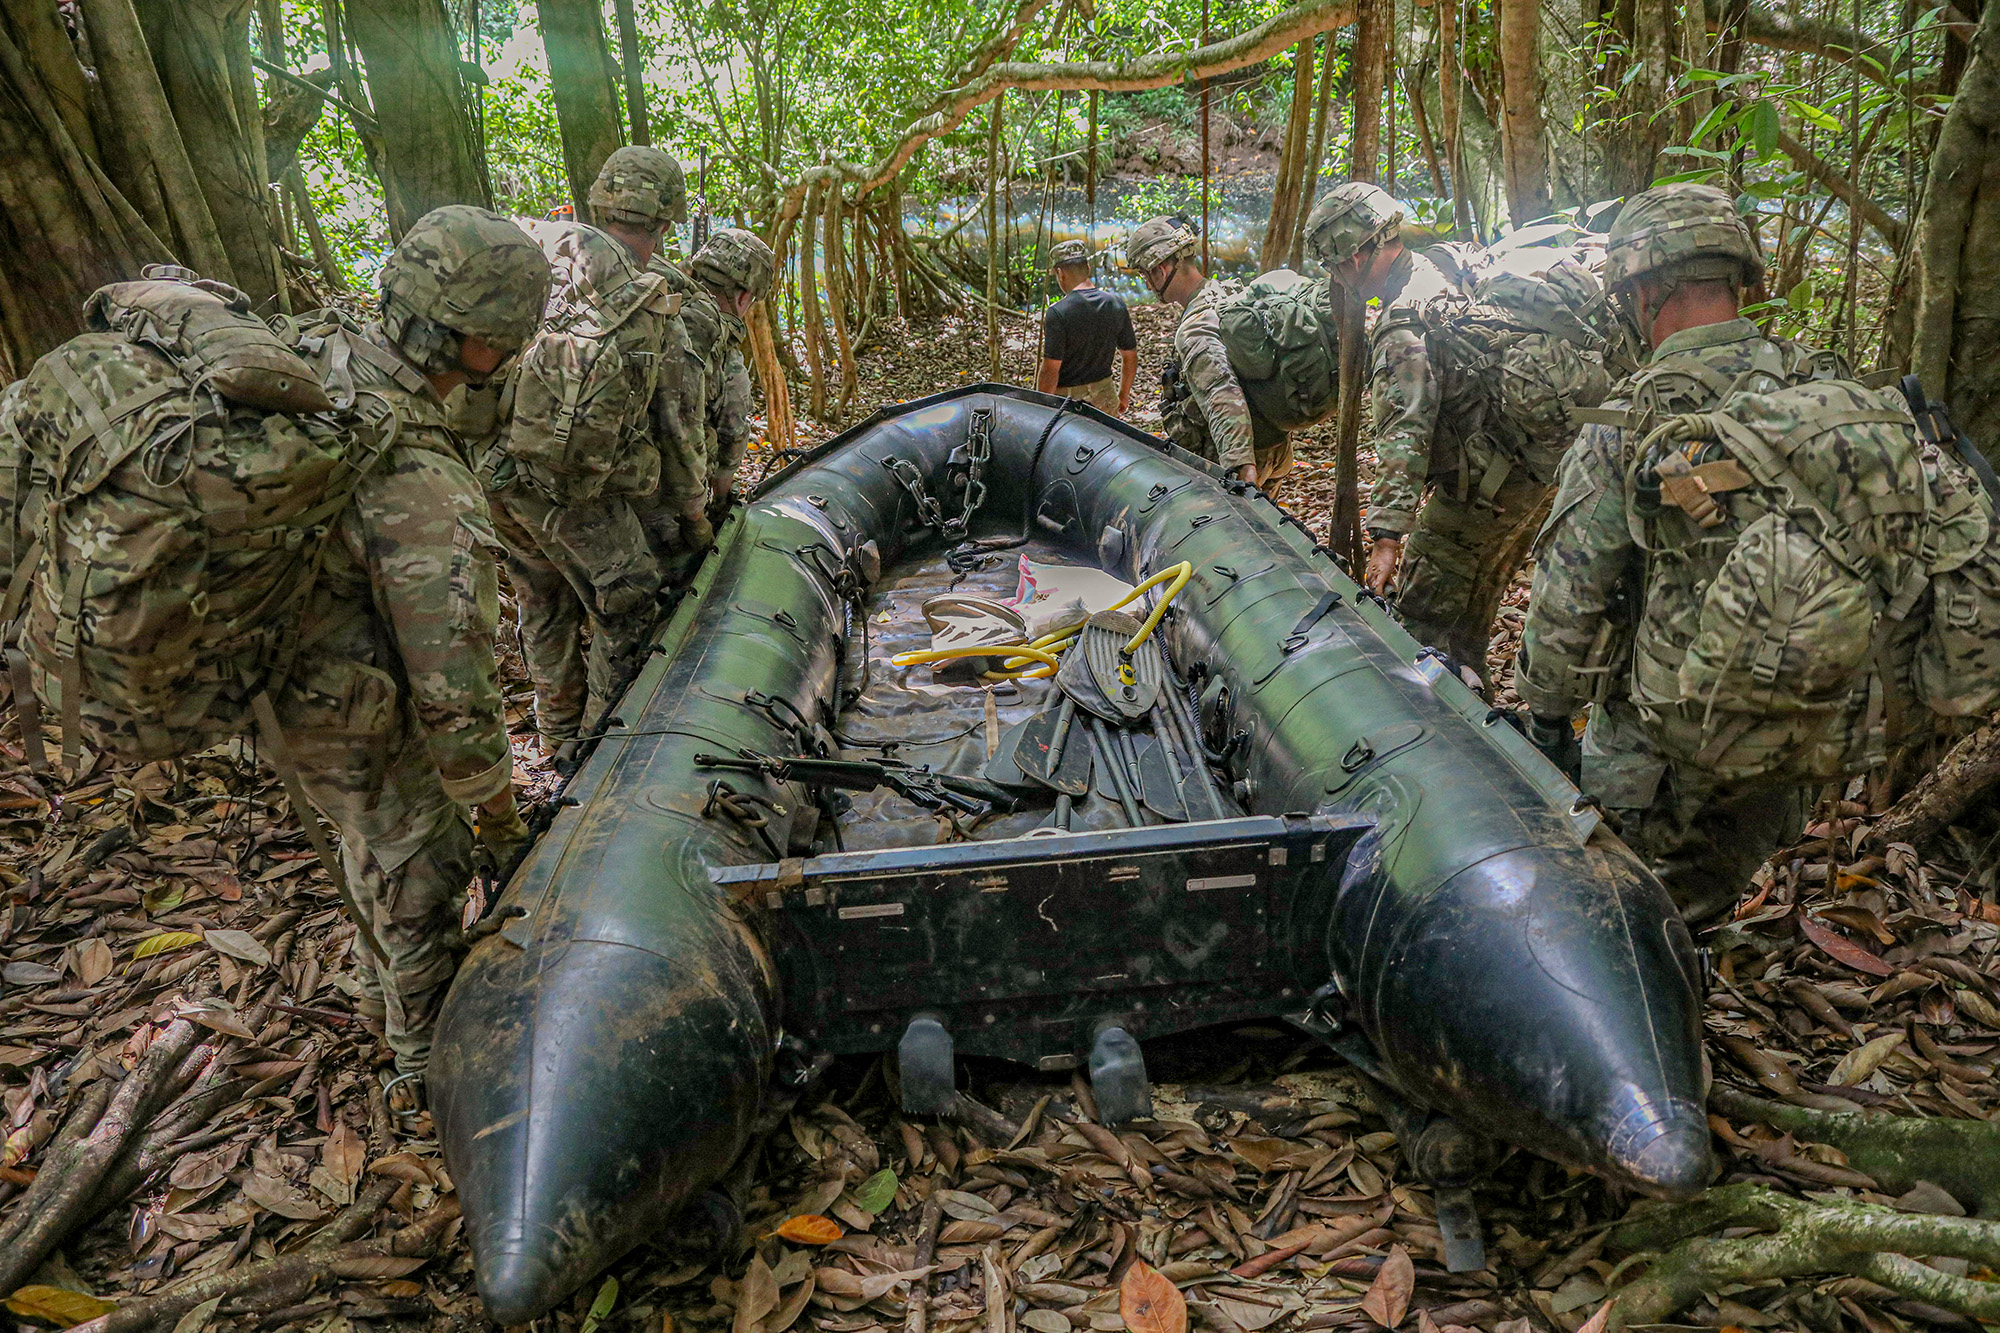 Soldiers assigned to the 25th Infantry Division conduct waterborne operations during patrol lanes at the Jungle Operations Training Course, Schofield Barracks East Range Training Complex, Hawaii, June 13, 2020. (Spc. Ezra Camarena/Army)